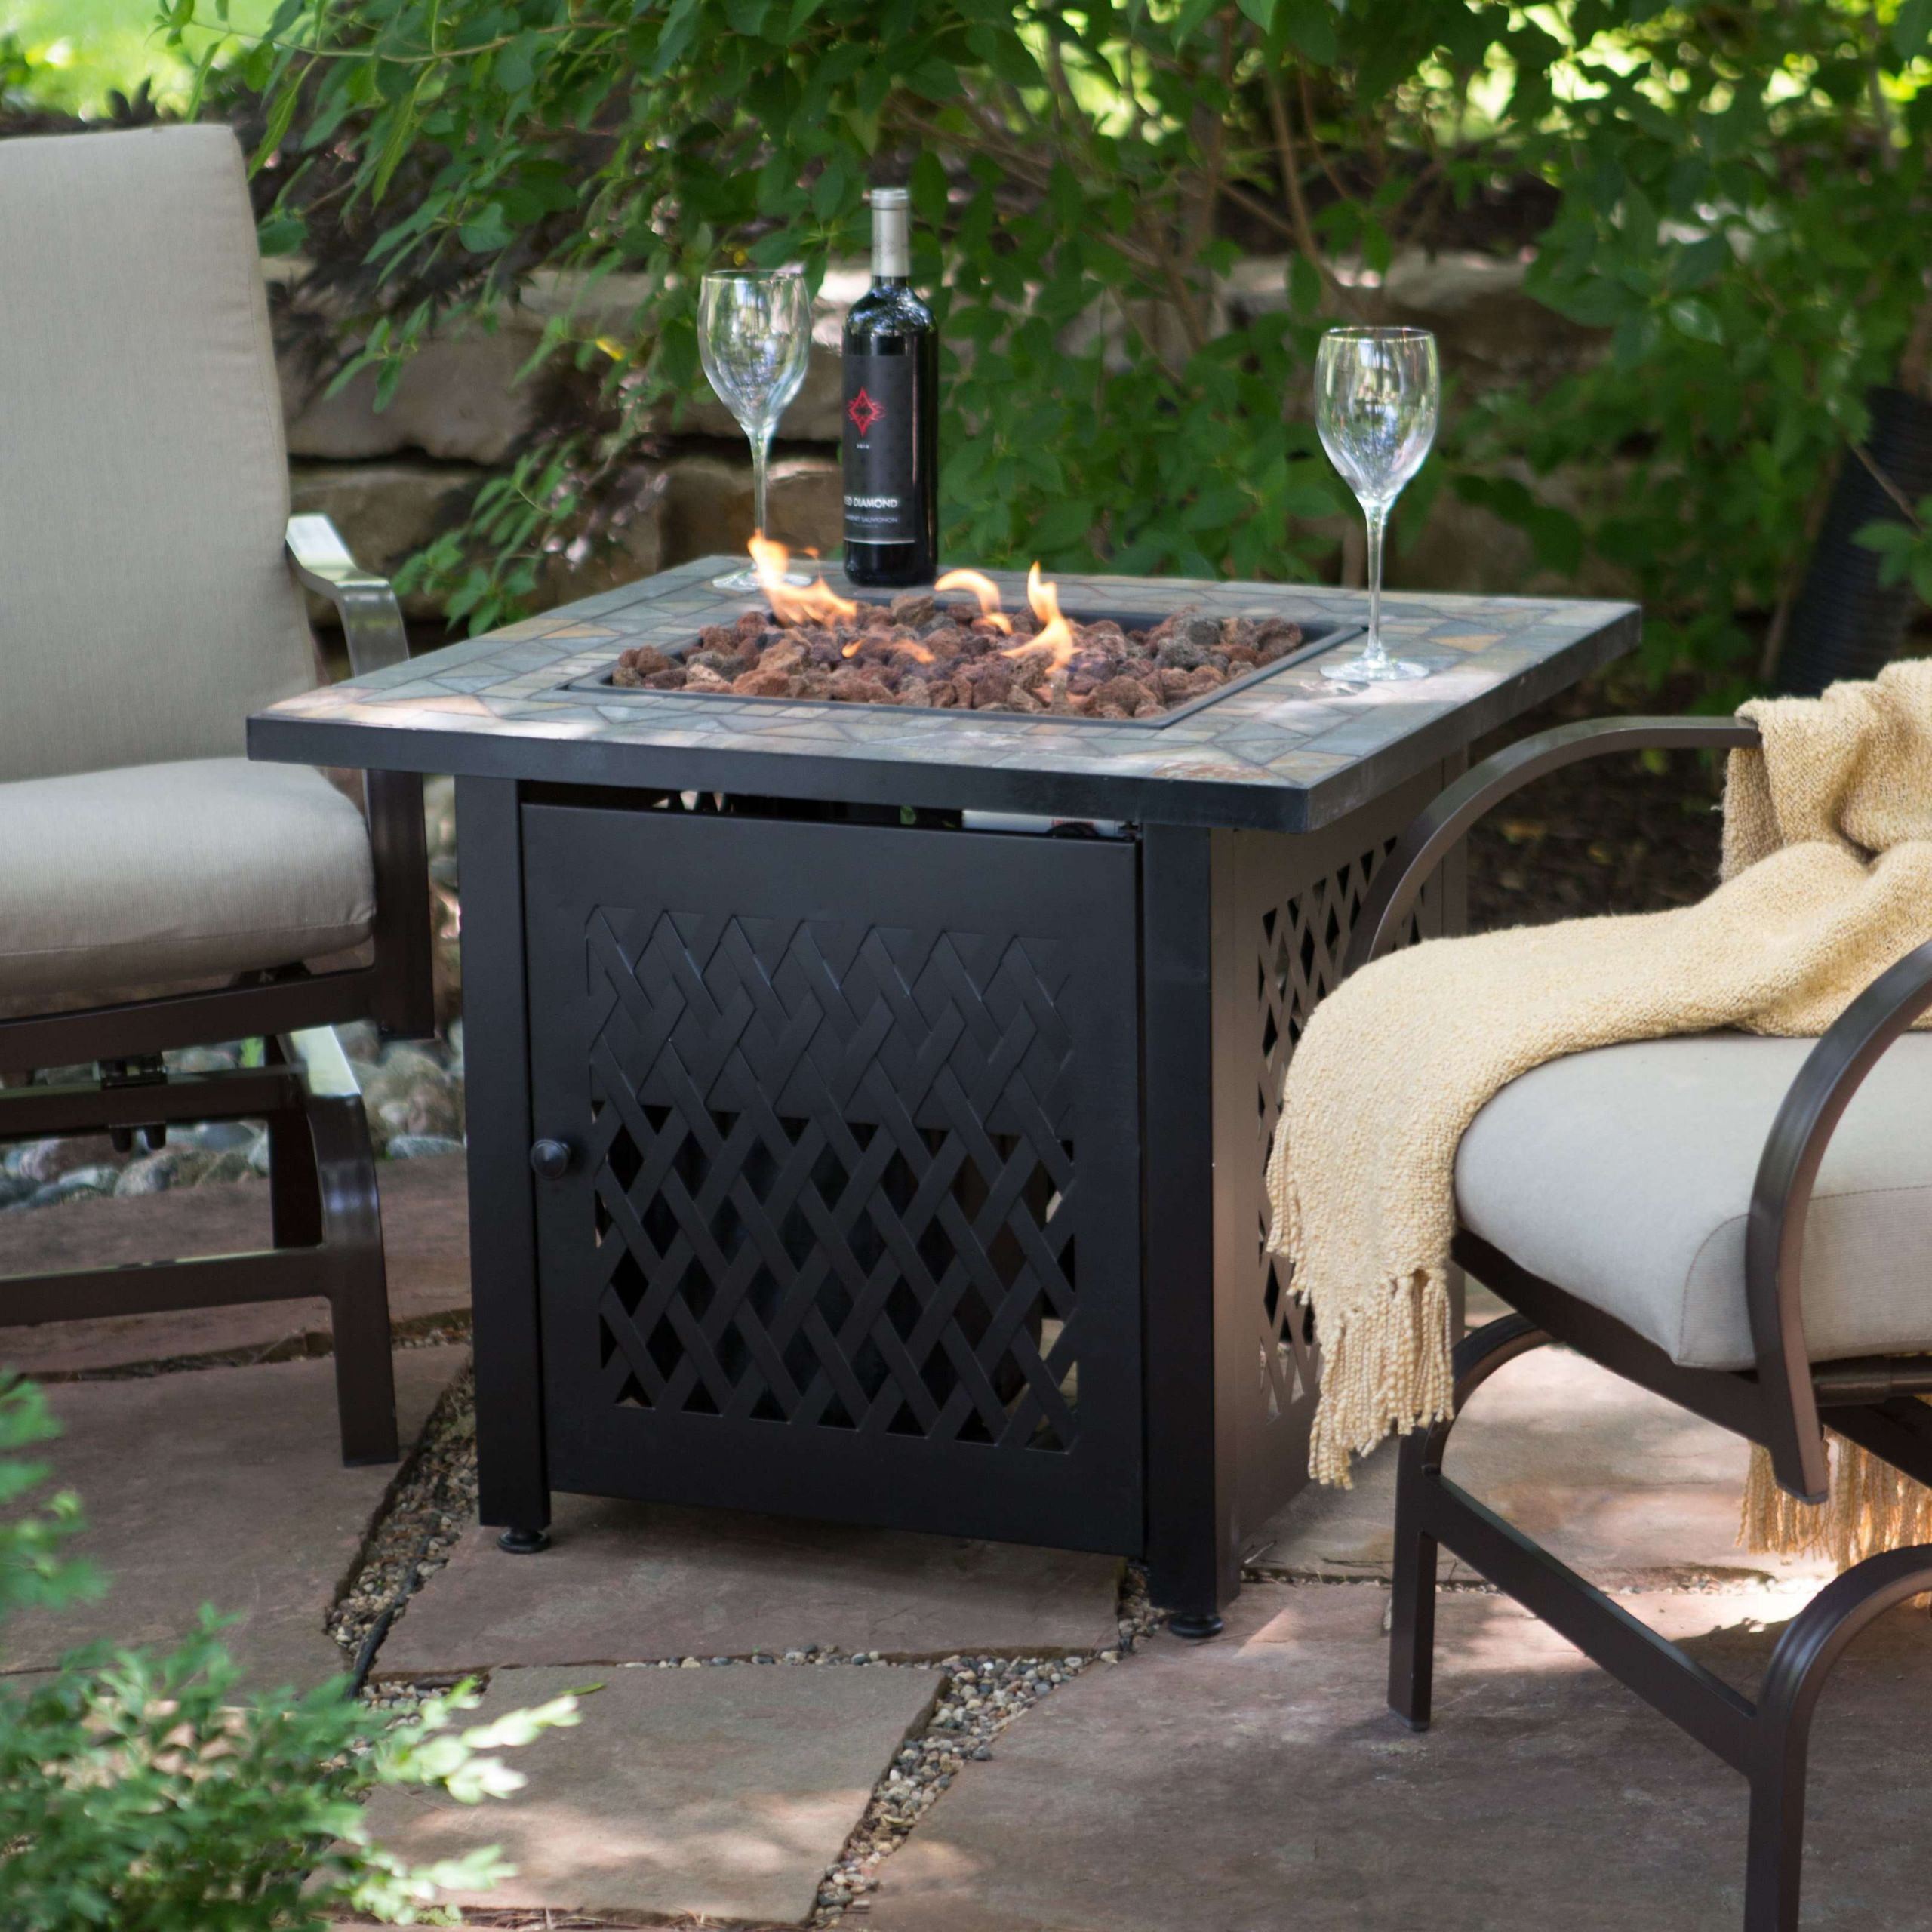 Propane Fire Pit Coffee Table  14 Propane Fire Pit Coffee Table Ideas